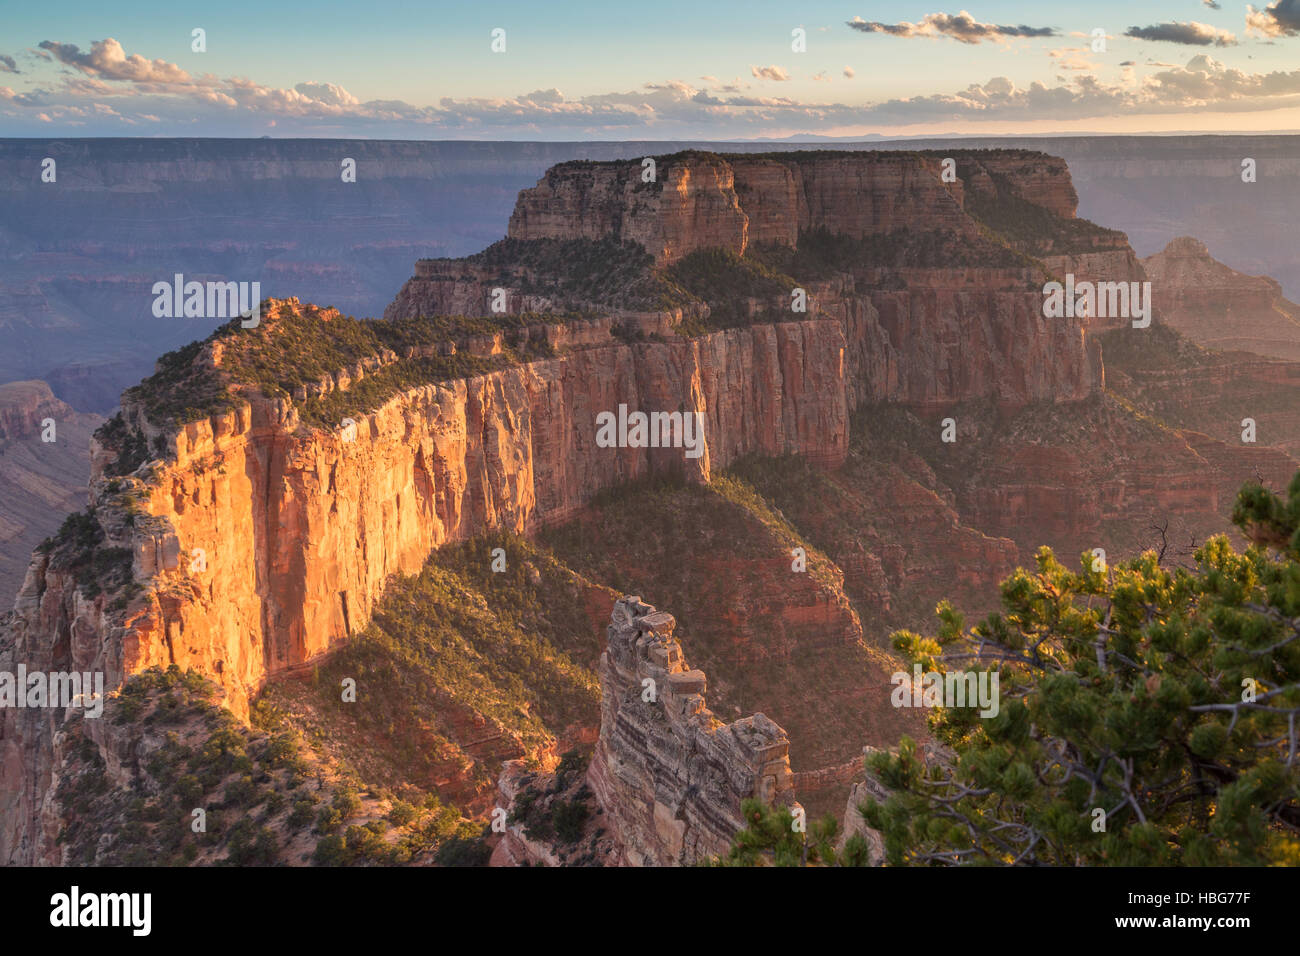 Anzeigen des Grand Canyon, rock-massiv, North Rim, Grand Canyon National Park, Arizona, USA Stockbild